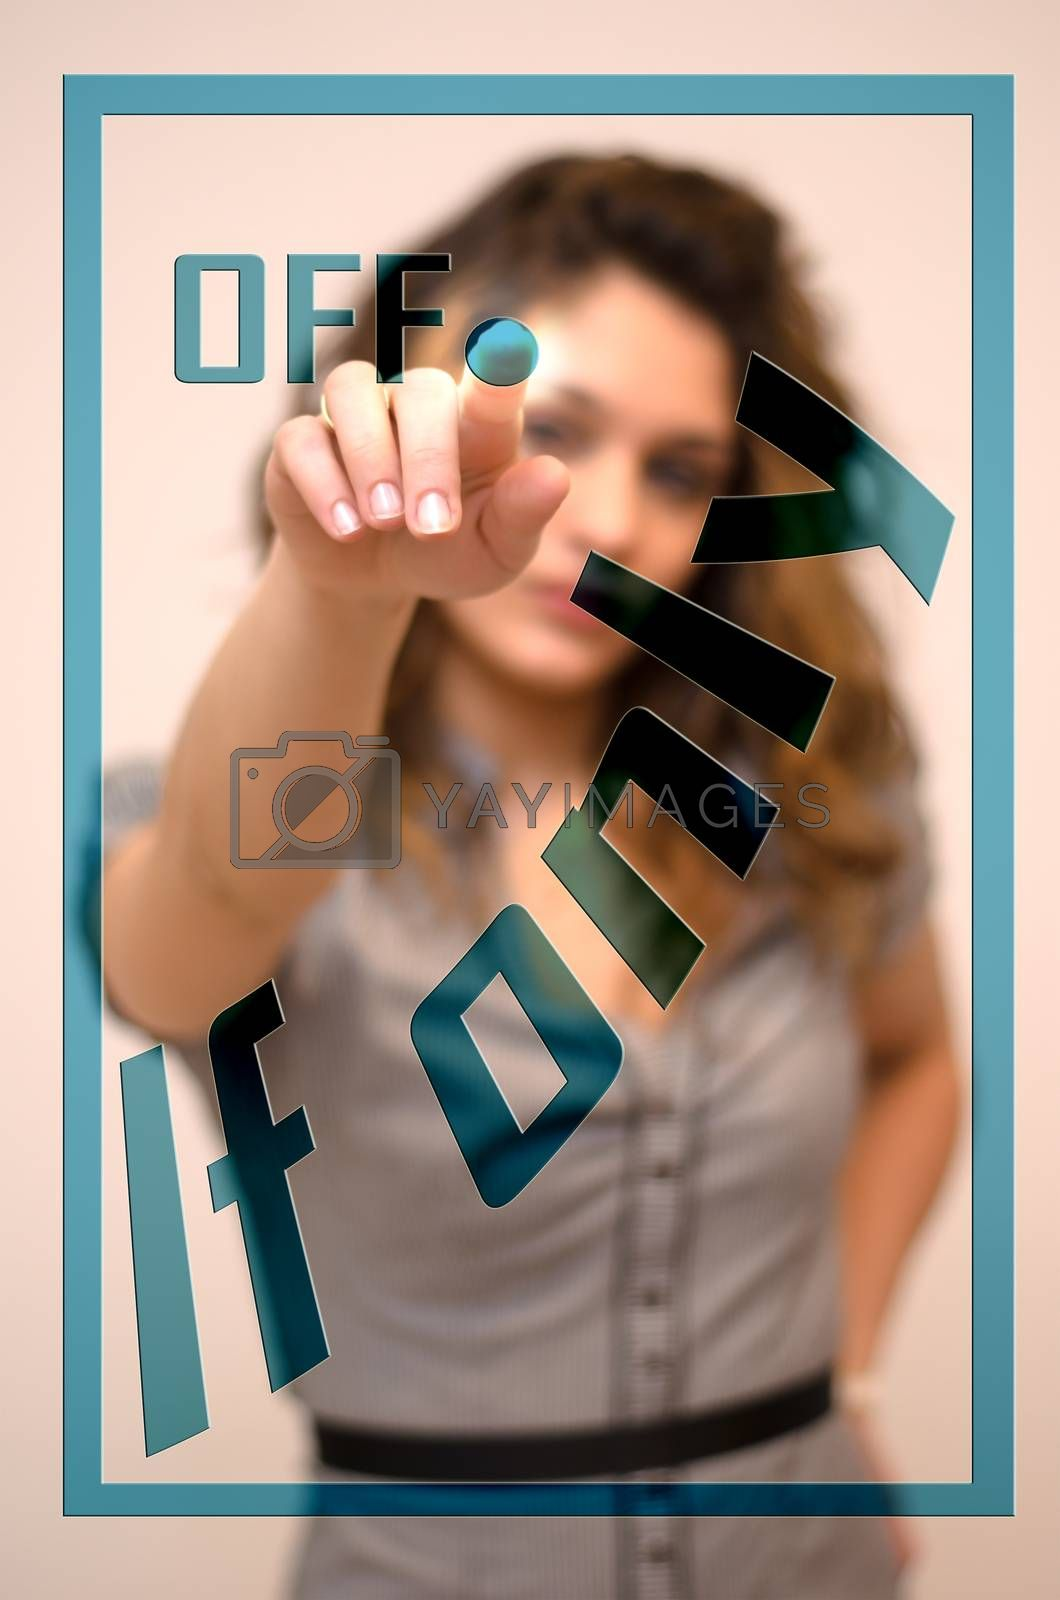 Royalty free image of woman switching off If only on digital interace by vepar5